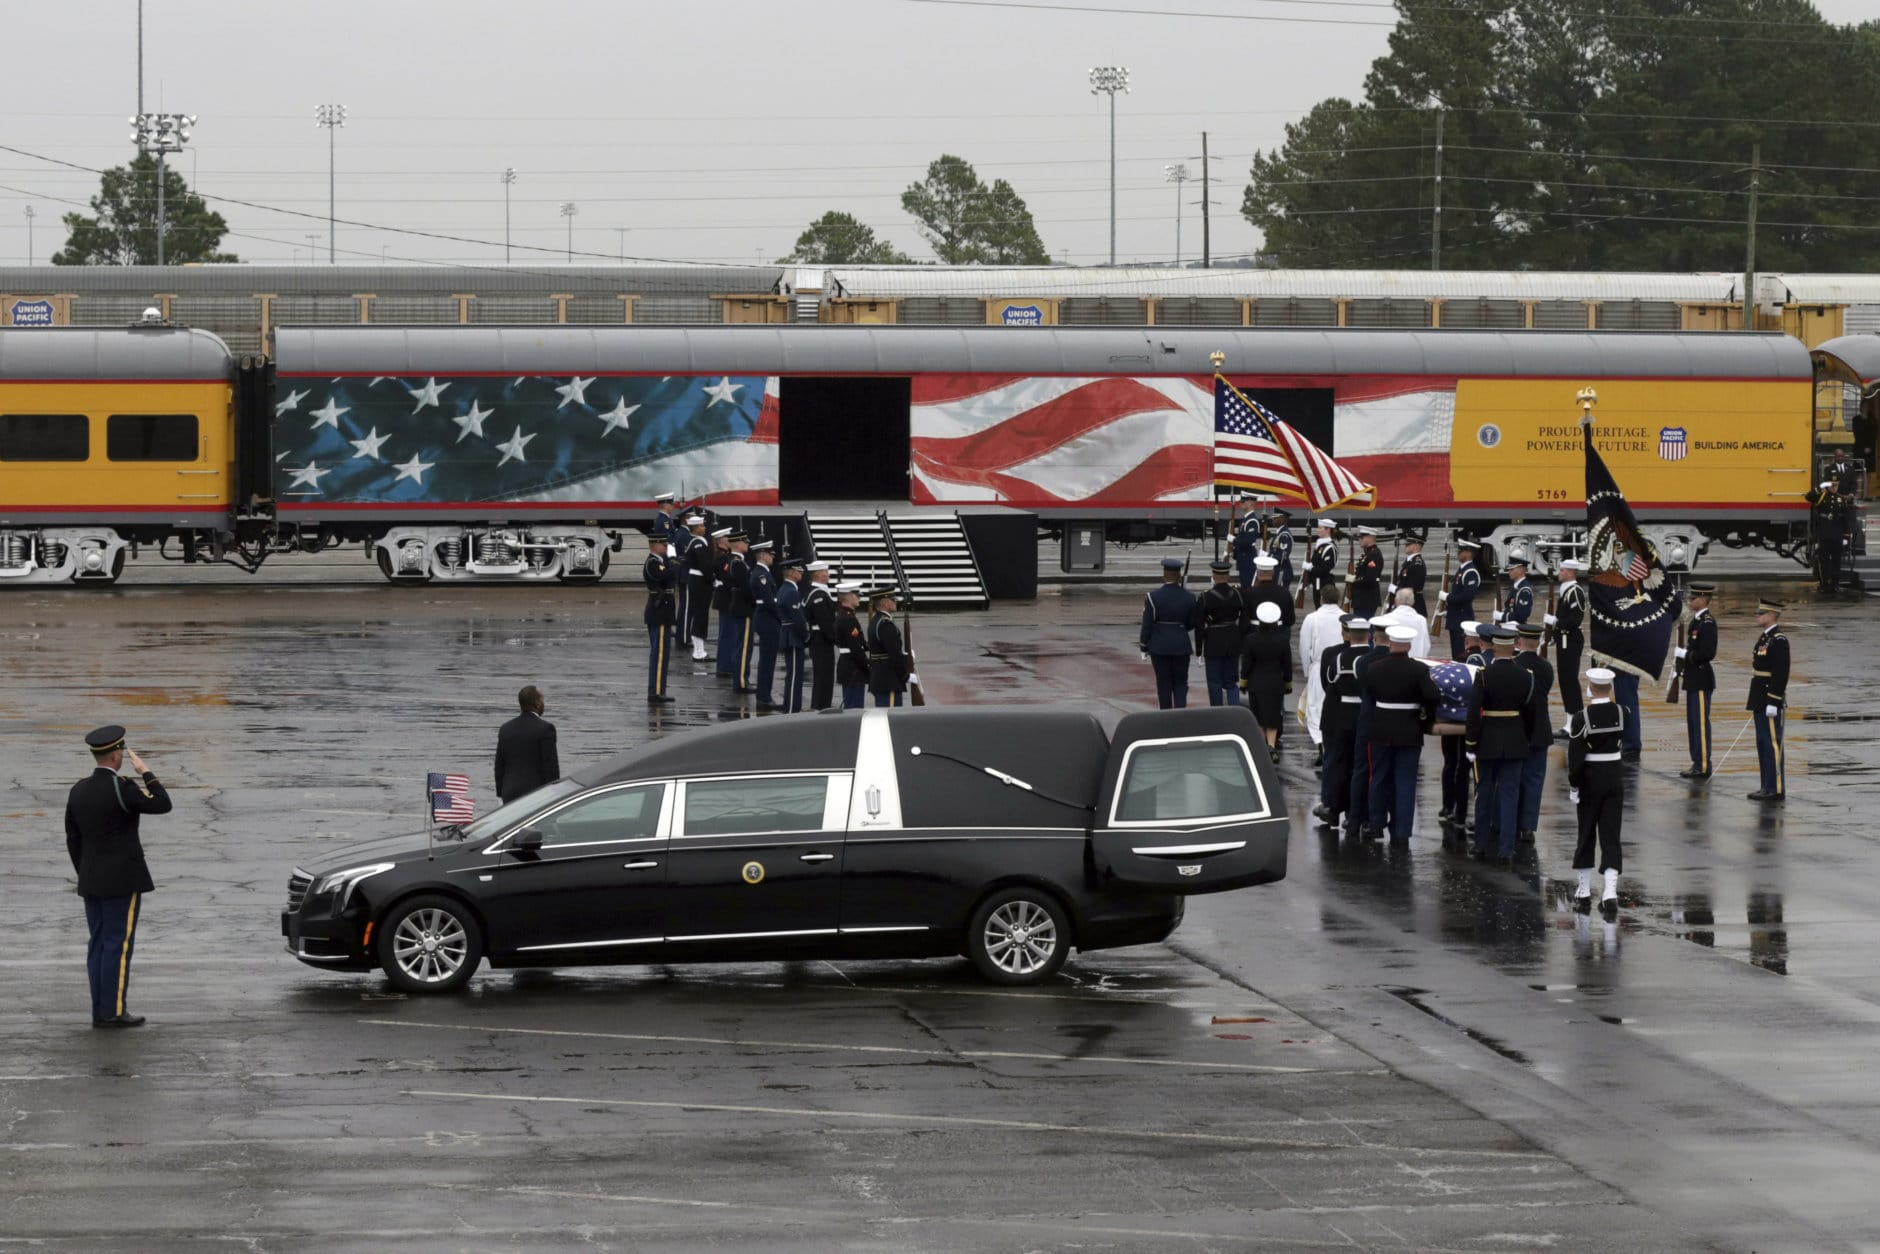 The flag-draped casket of former President George H.W. Bush is carried by a joint services military honor guard to a train at Union Pacific Westfield auto facility Thursday, Dec. 6, 2018, in Spring, Texas. (AP Photo/Kiichiro Sato)